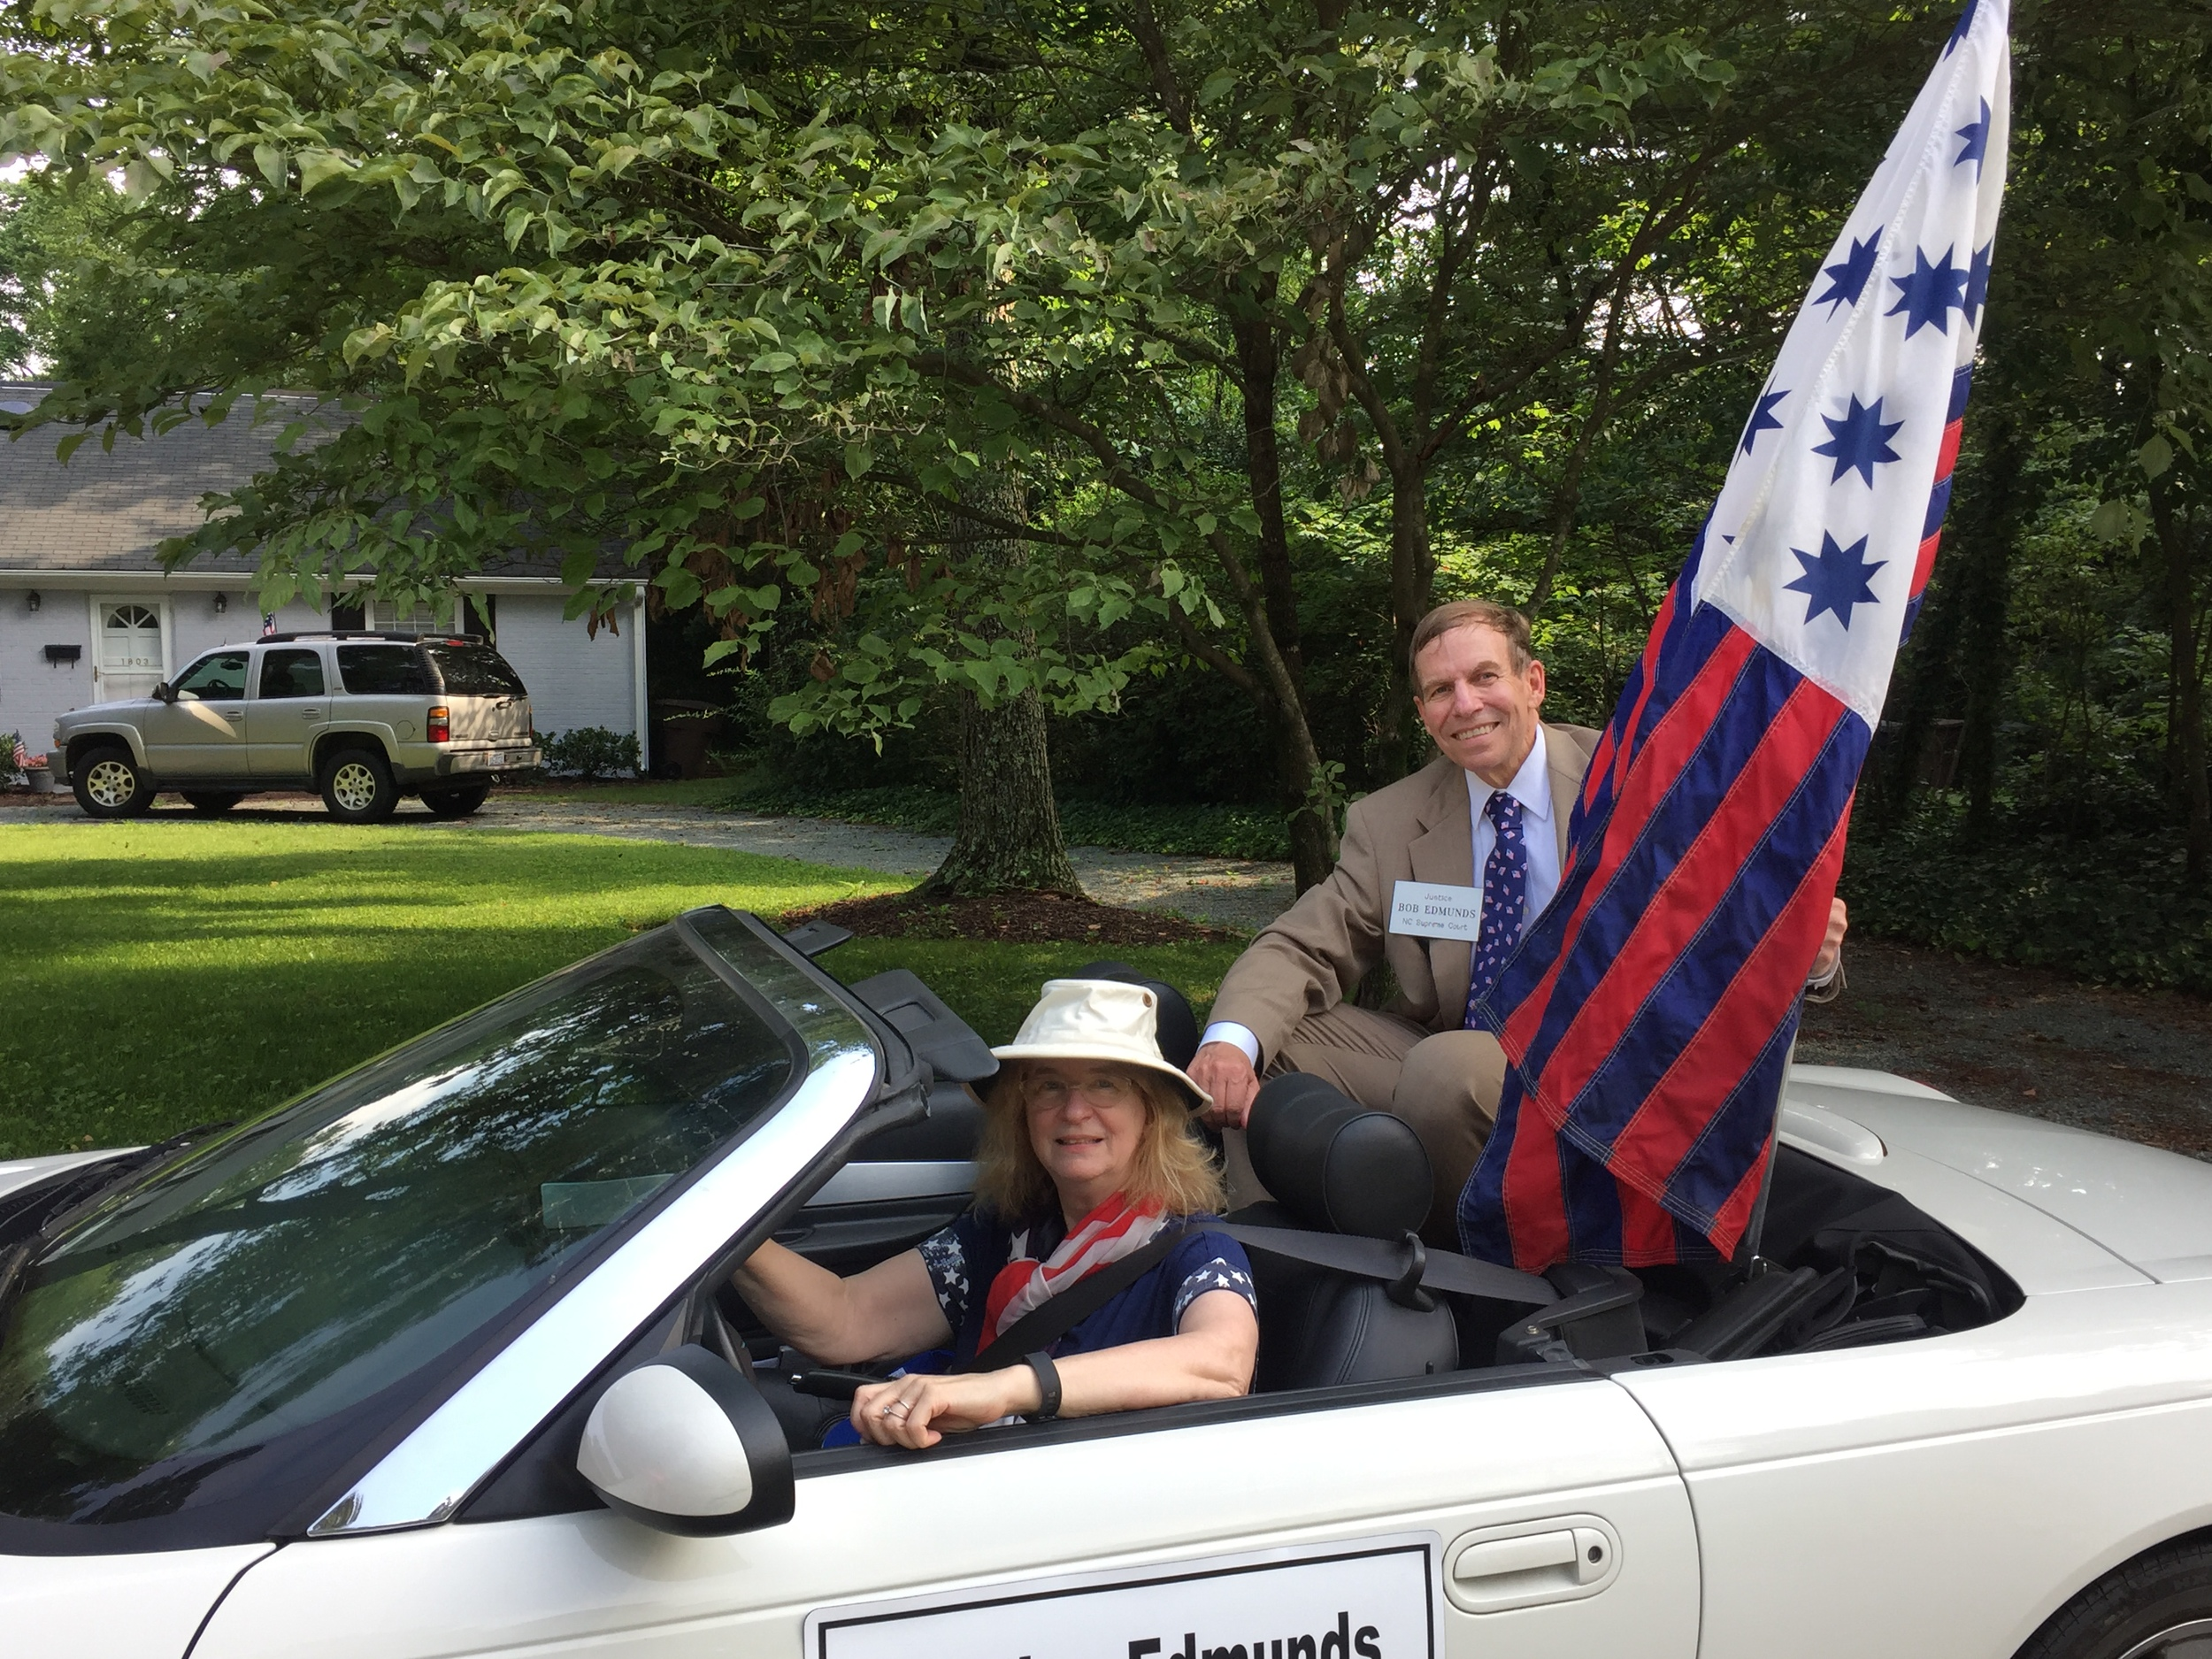 Carrying the flag from the Battle of Guilford Courthouse while participating in Greensboro's Kirkwood parade, July 4, 2016.